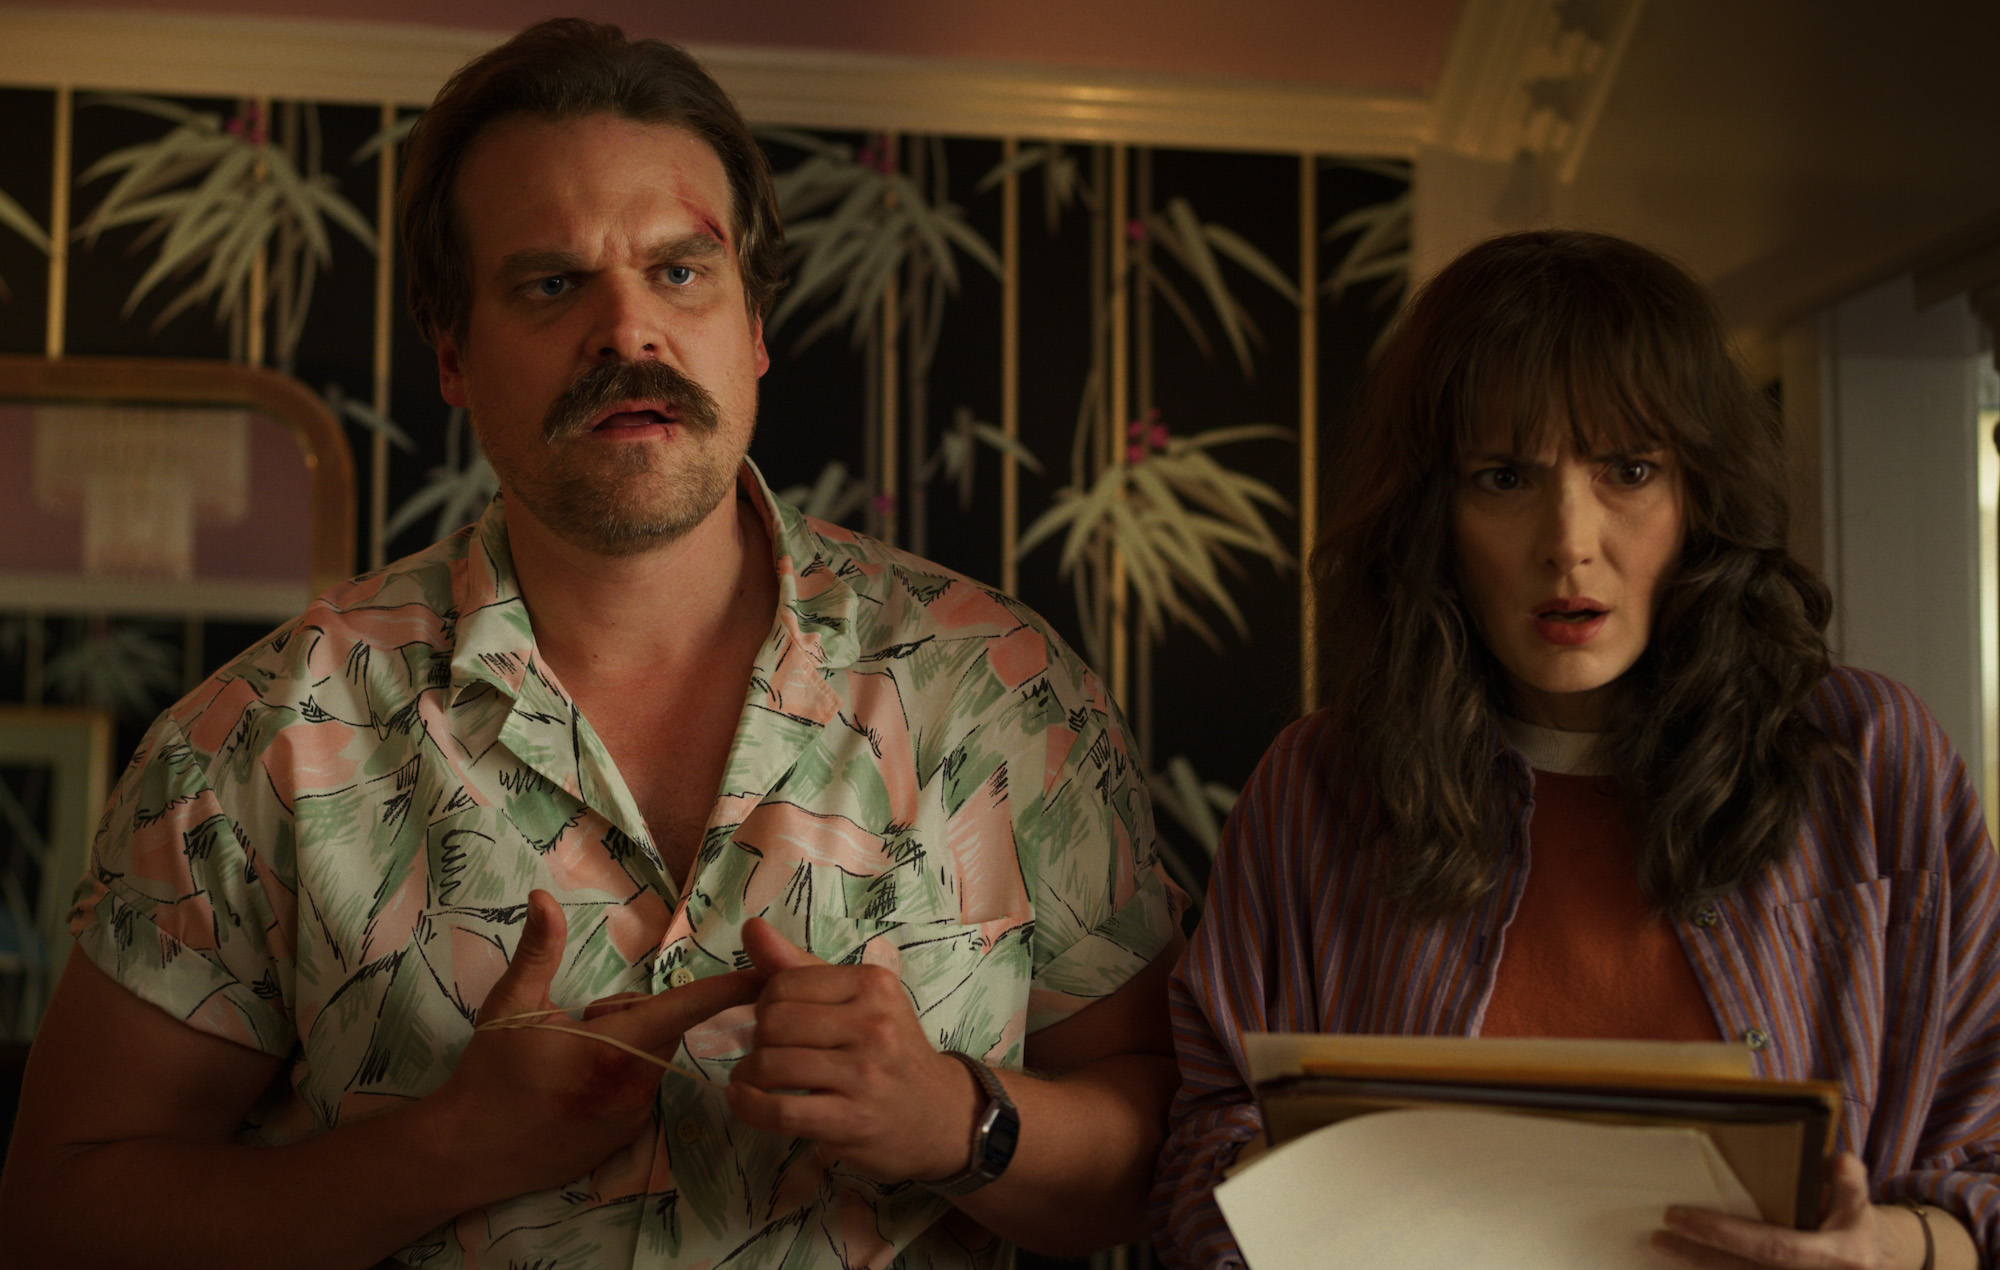 Creators of 'Stranger Things 3' may have revealed Jim Hopper's fate